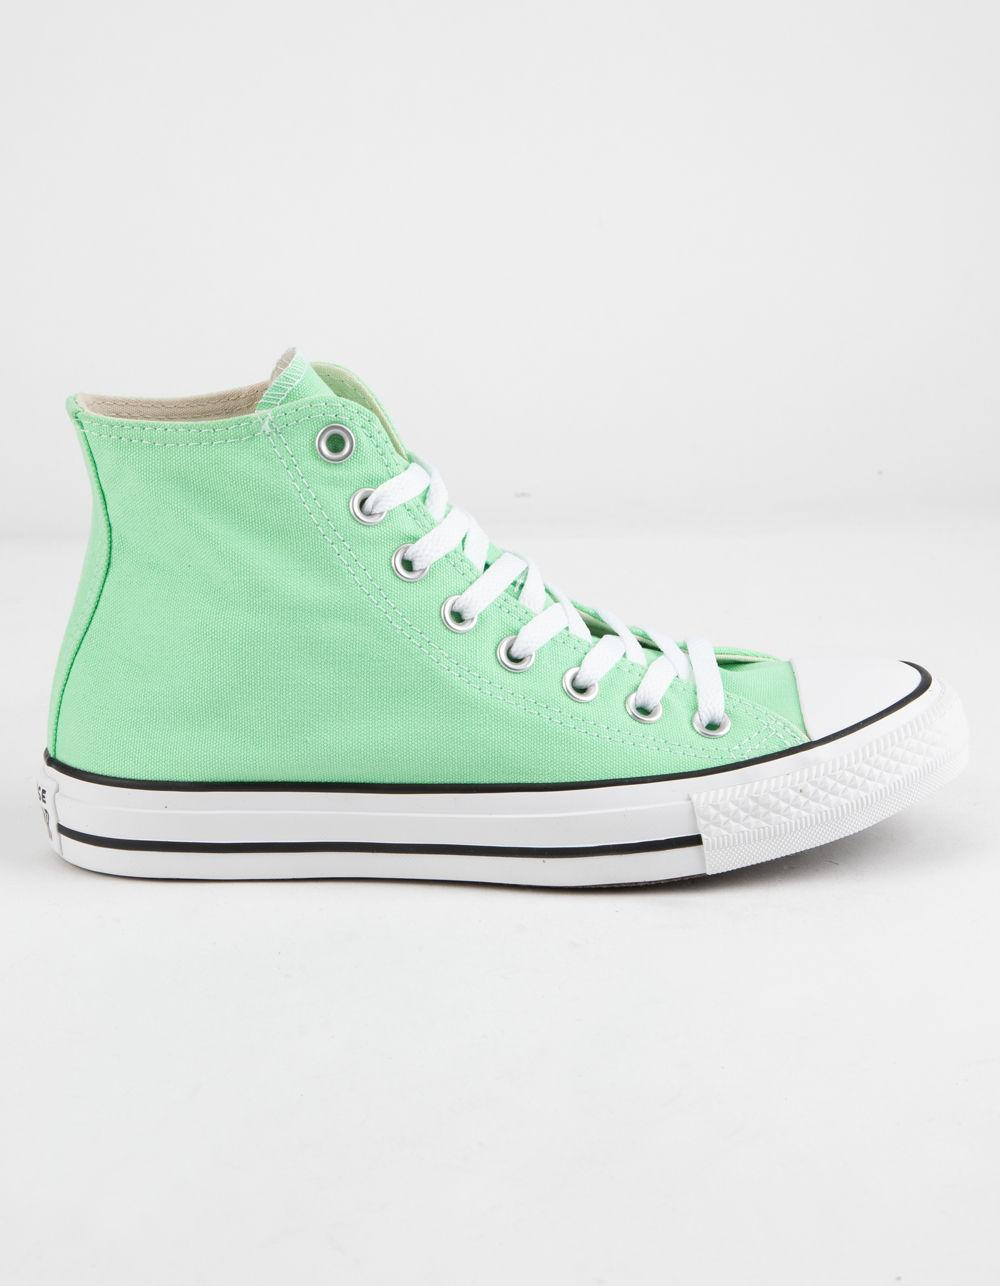 ba03f724988ce0 Converse. Chuck Taylor All Star Light Aphid Green High Top Womens Shoes